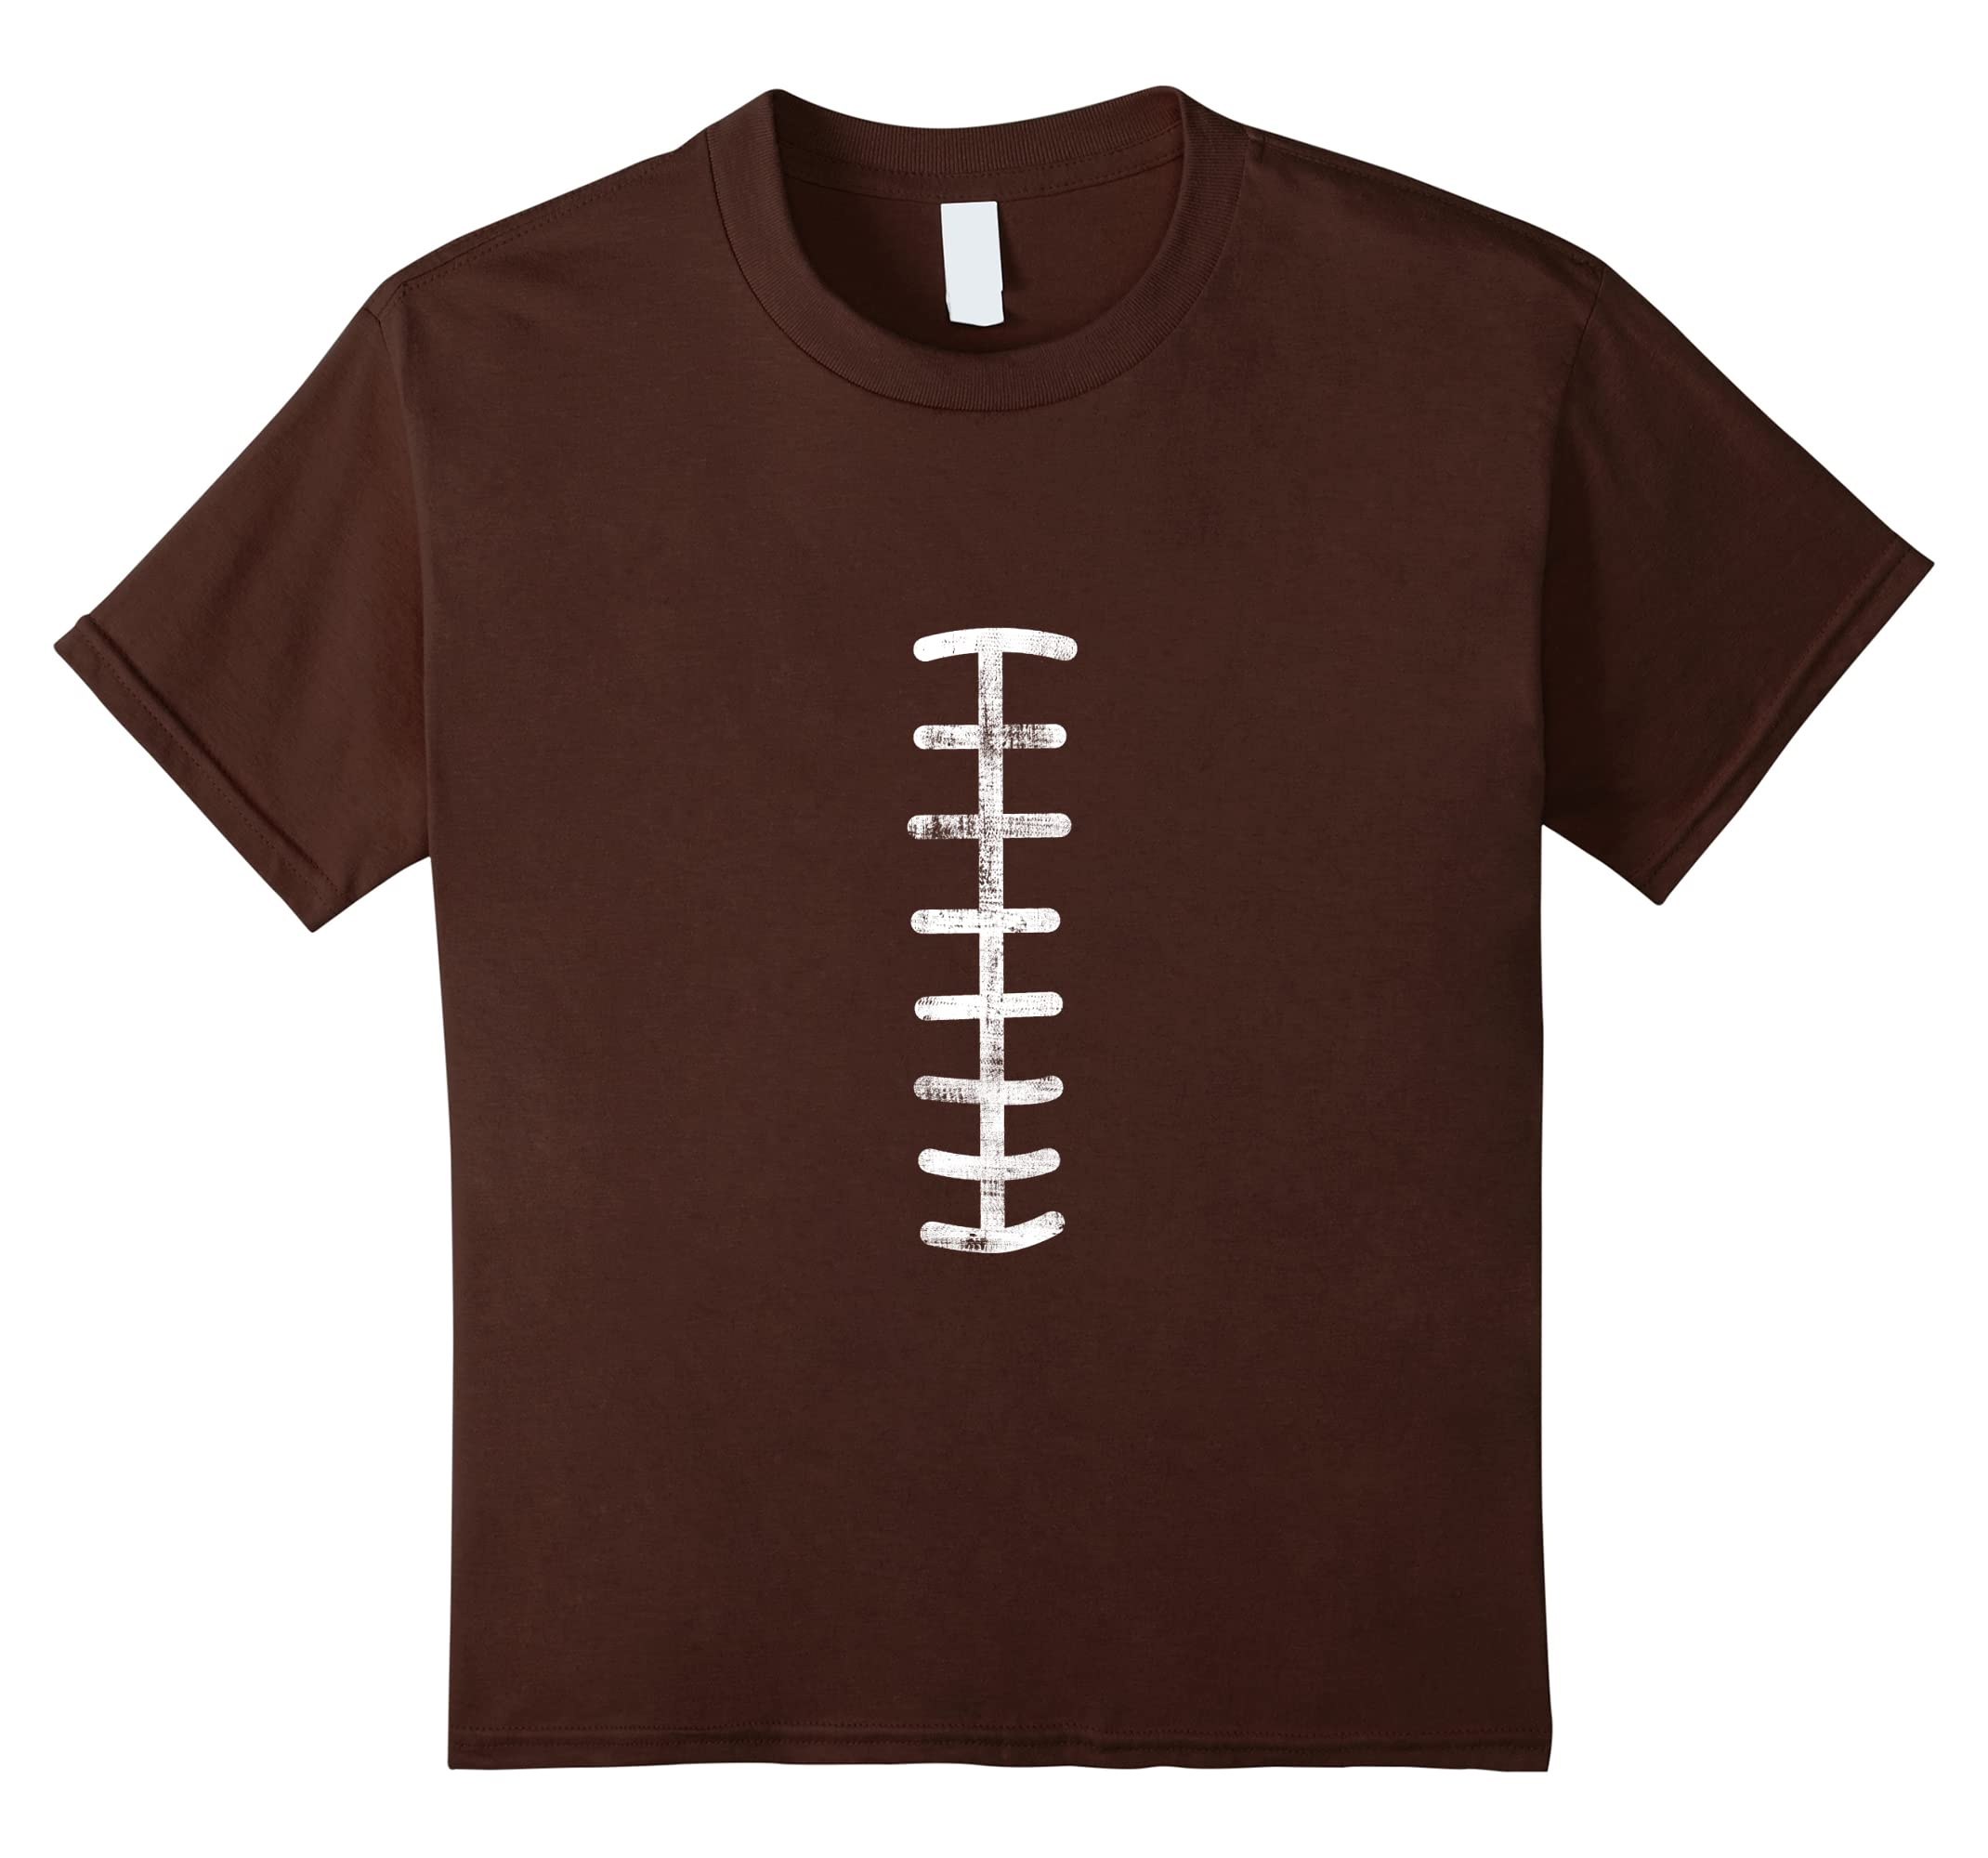 Funny Football Shirt Match American-Tovacu